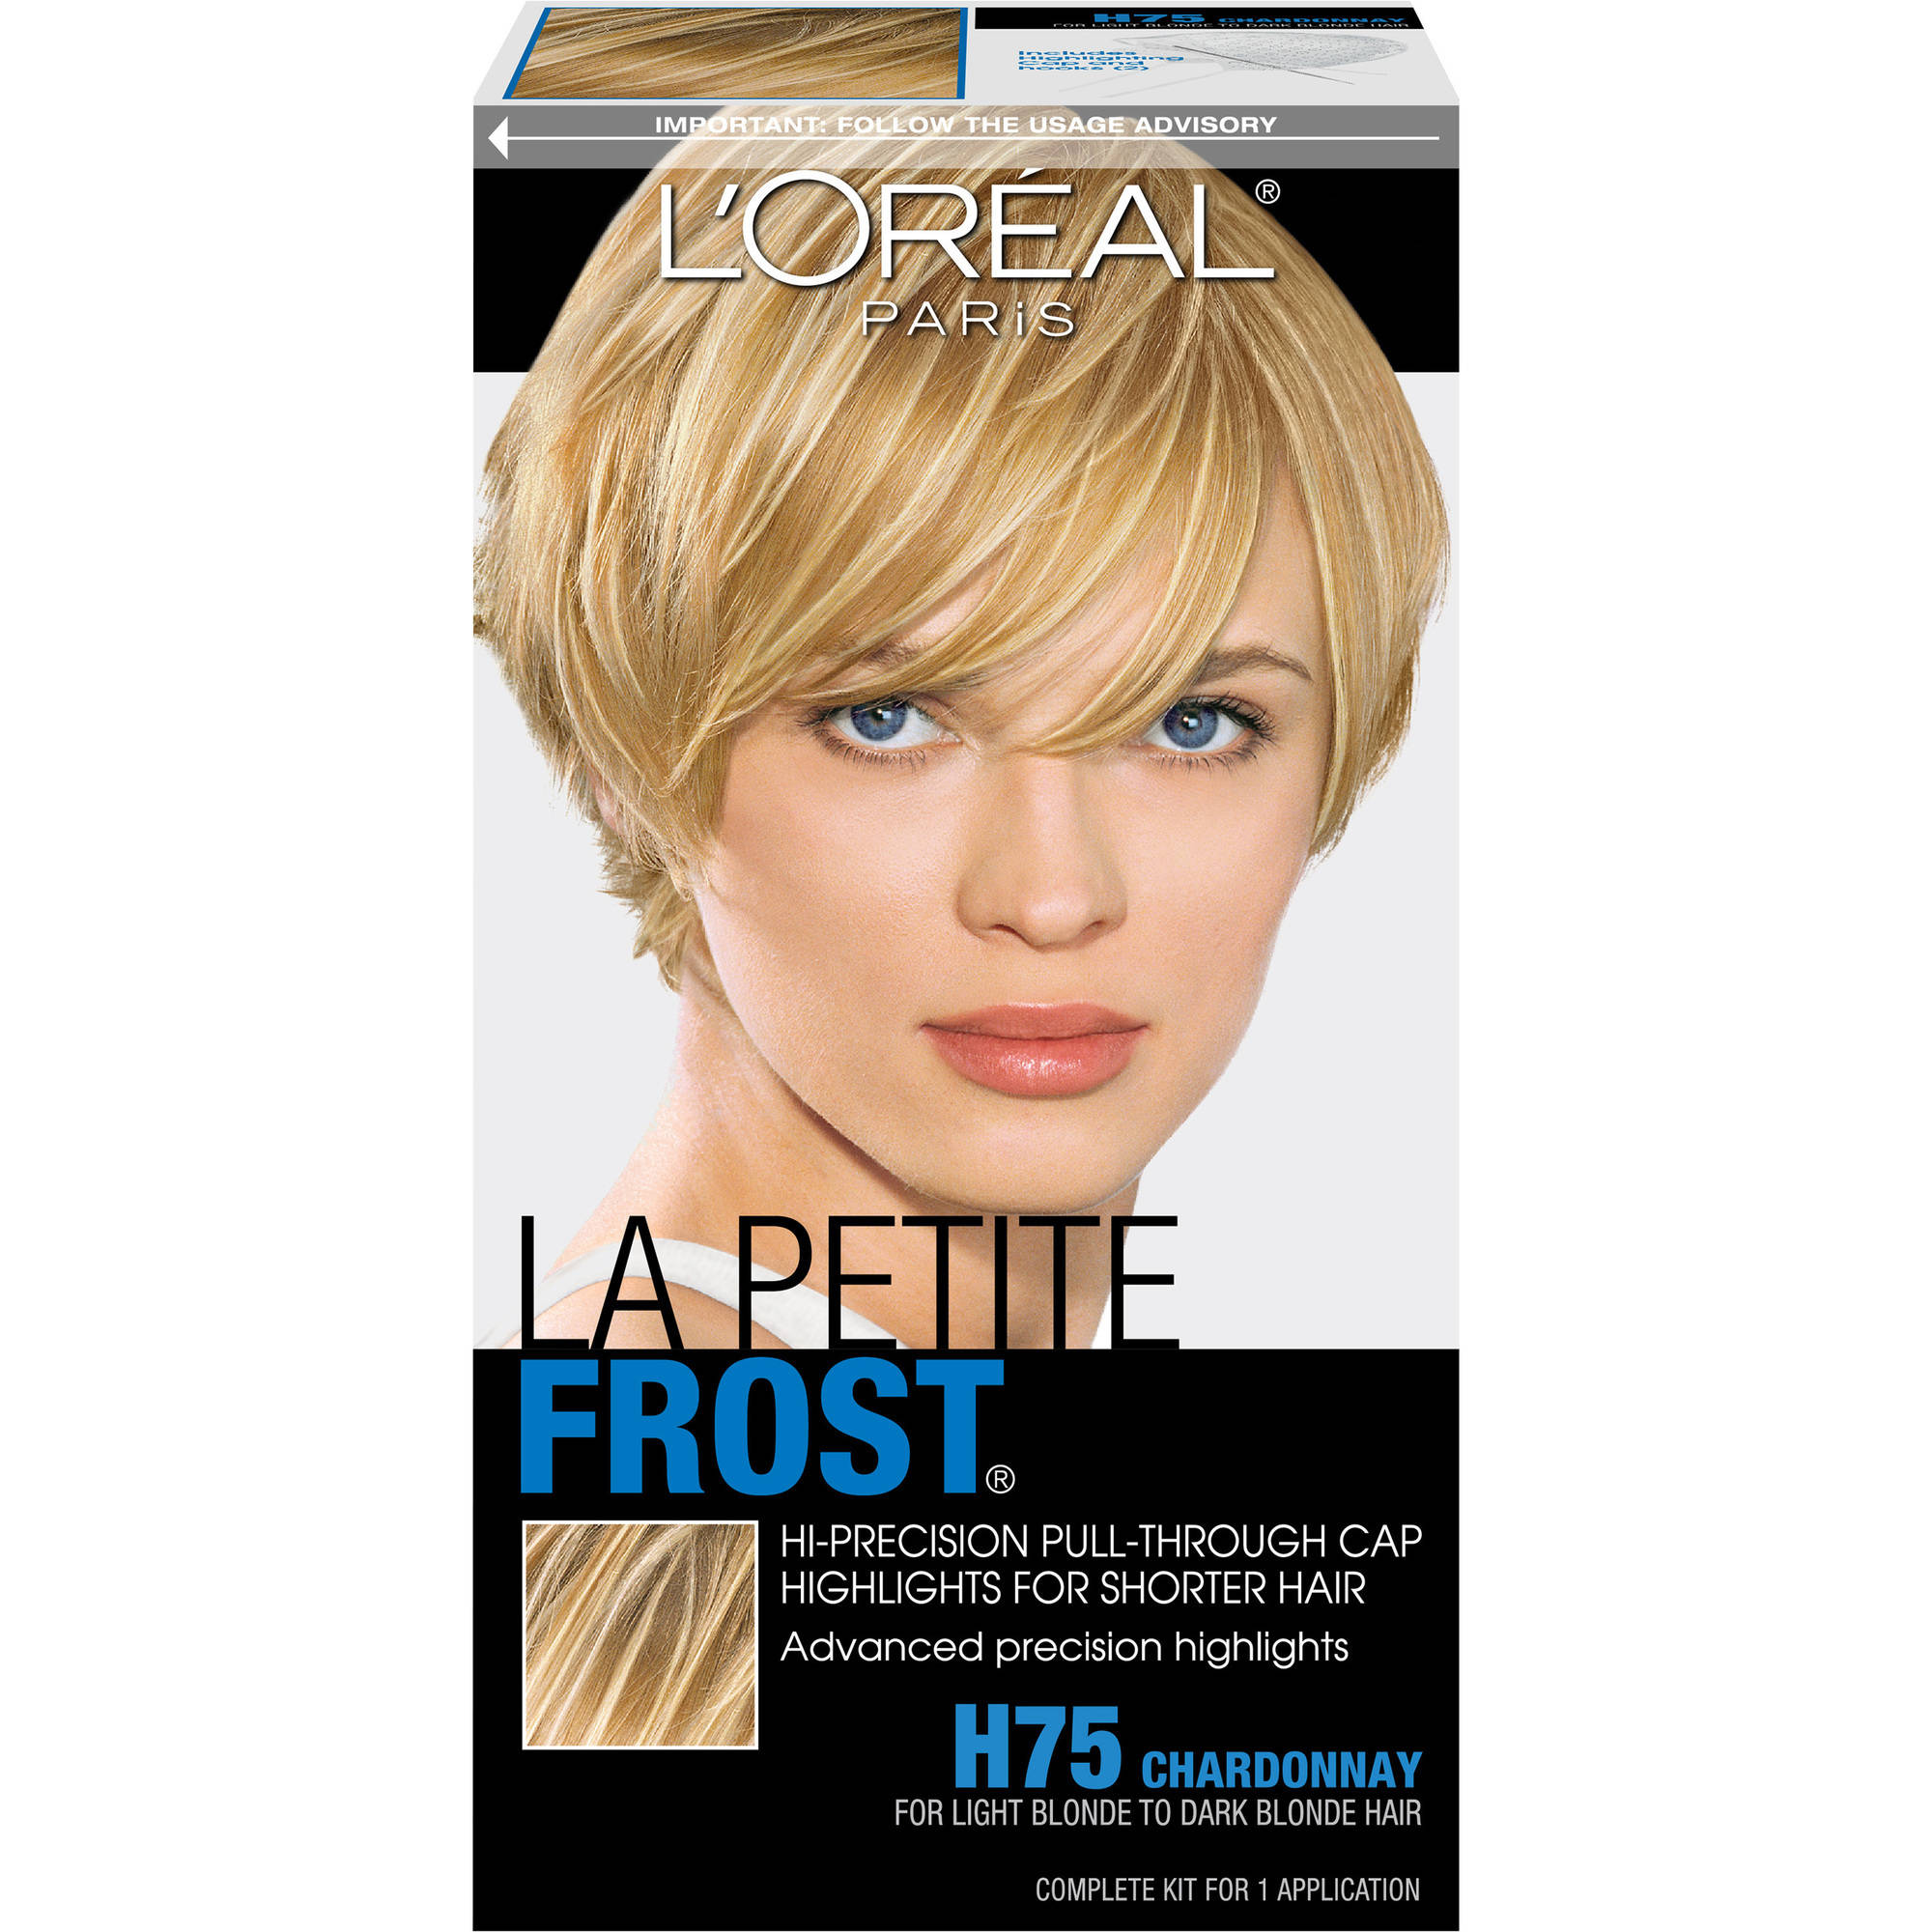 L'Oreal Paris Le Petite Frost Hi-Precision Pull-Through Cap Highlights For Shorter Hair